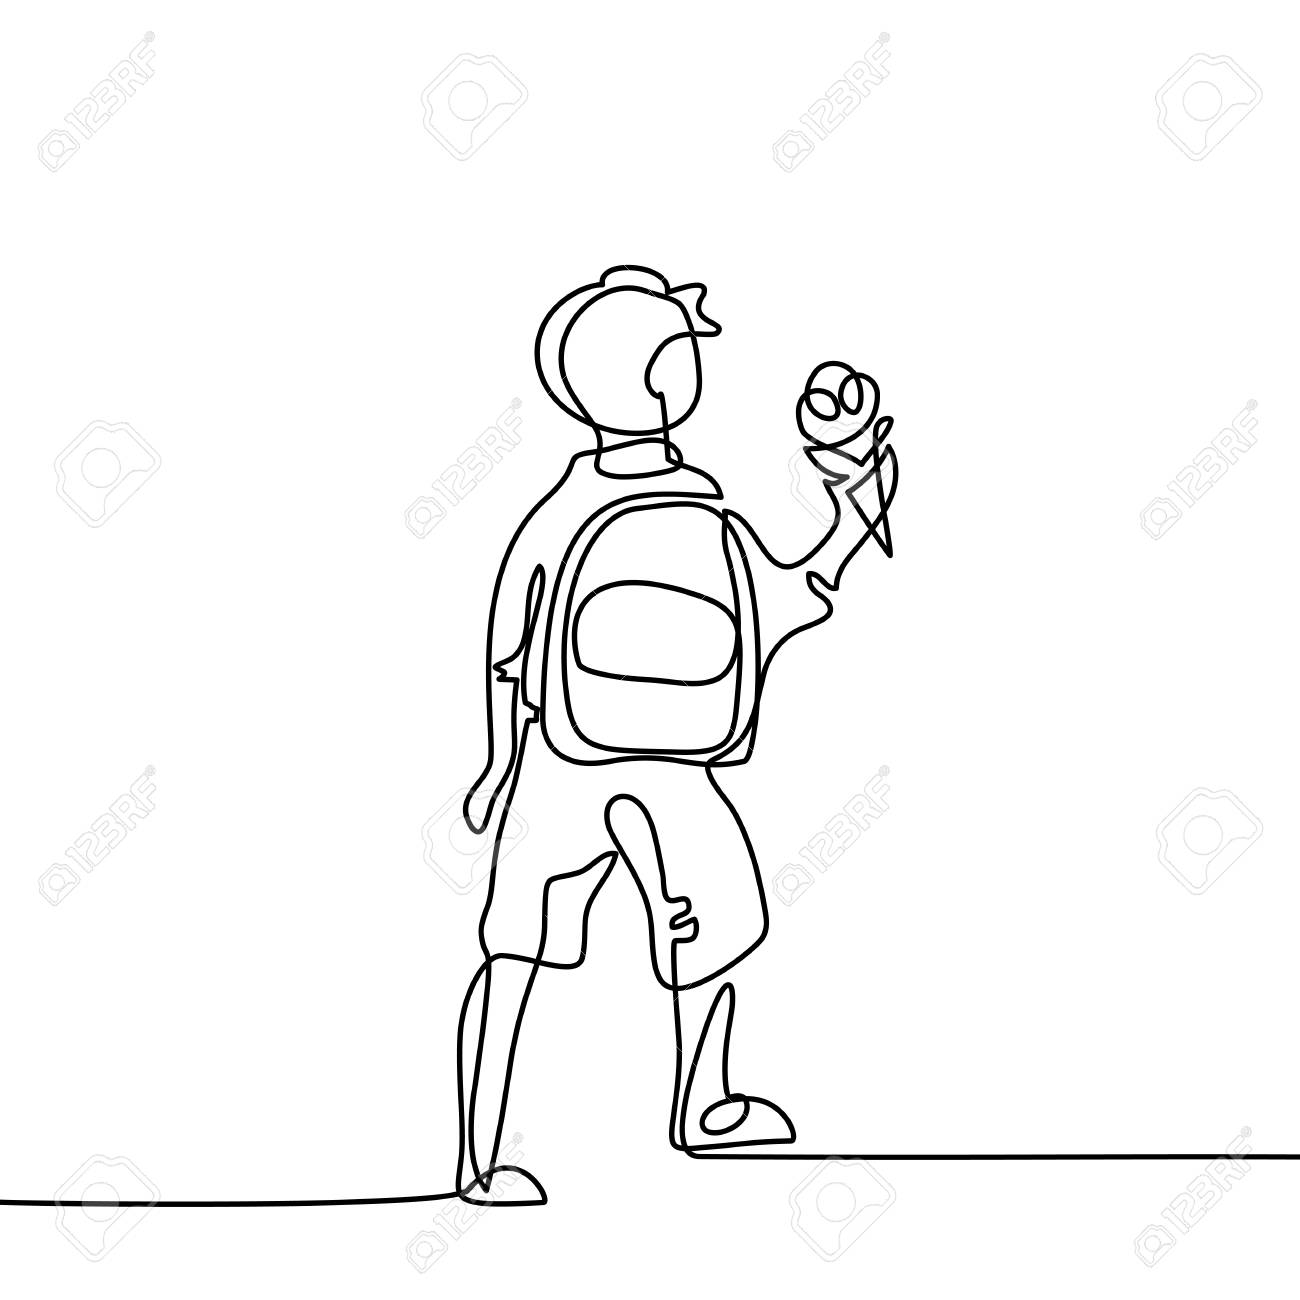 1300x1300 Boy With Ice Cream Going Back To School With Bag. Continuous